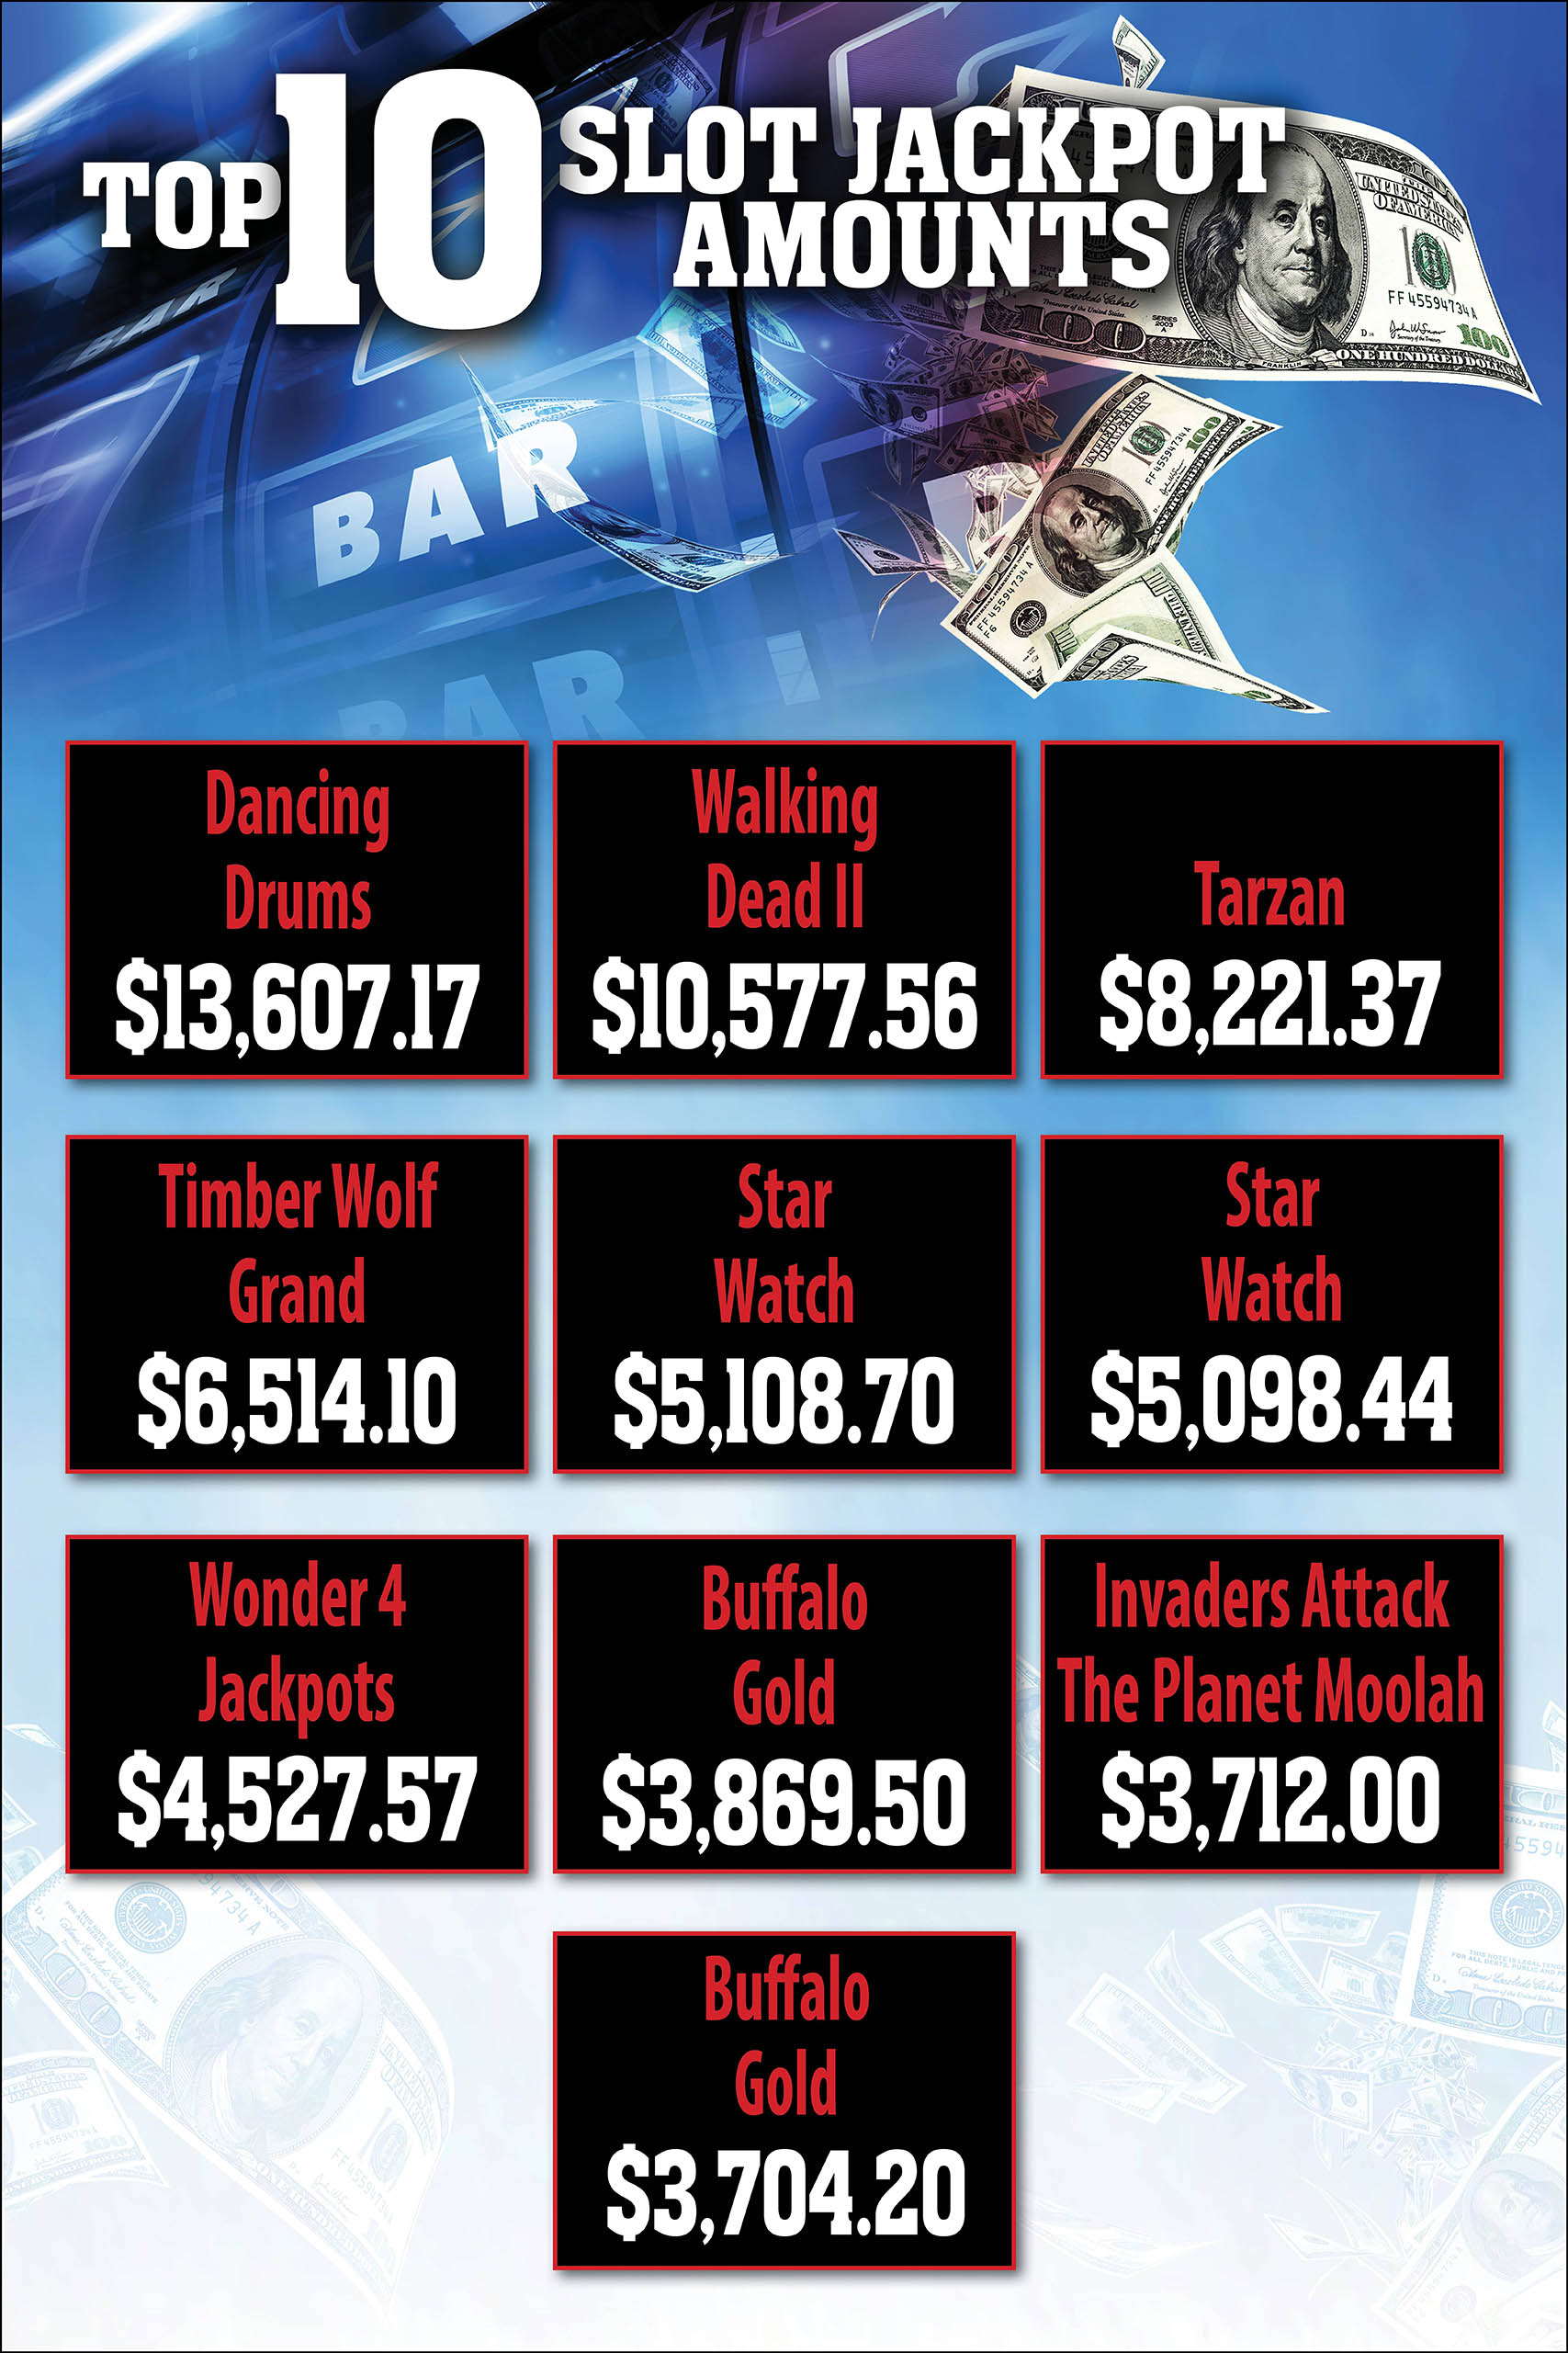 Top 10 Slot Jackpot Amounts at Prairie Wind Casino